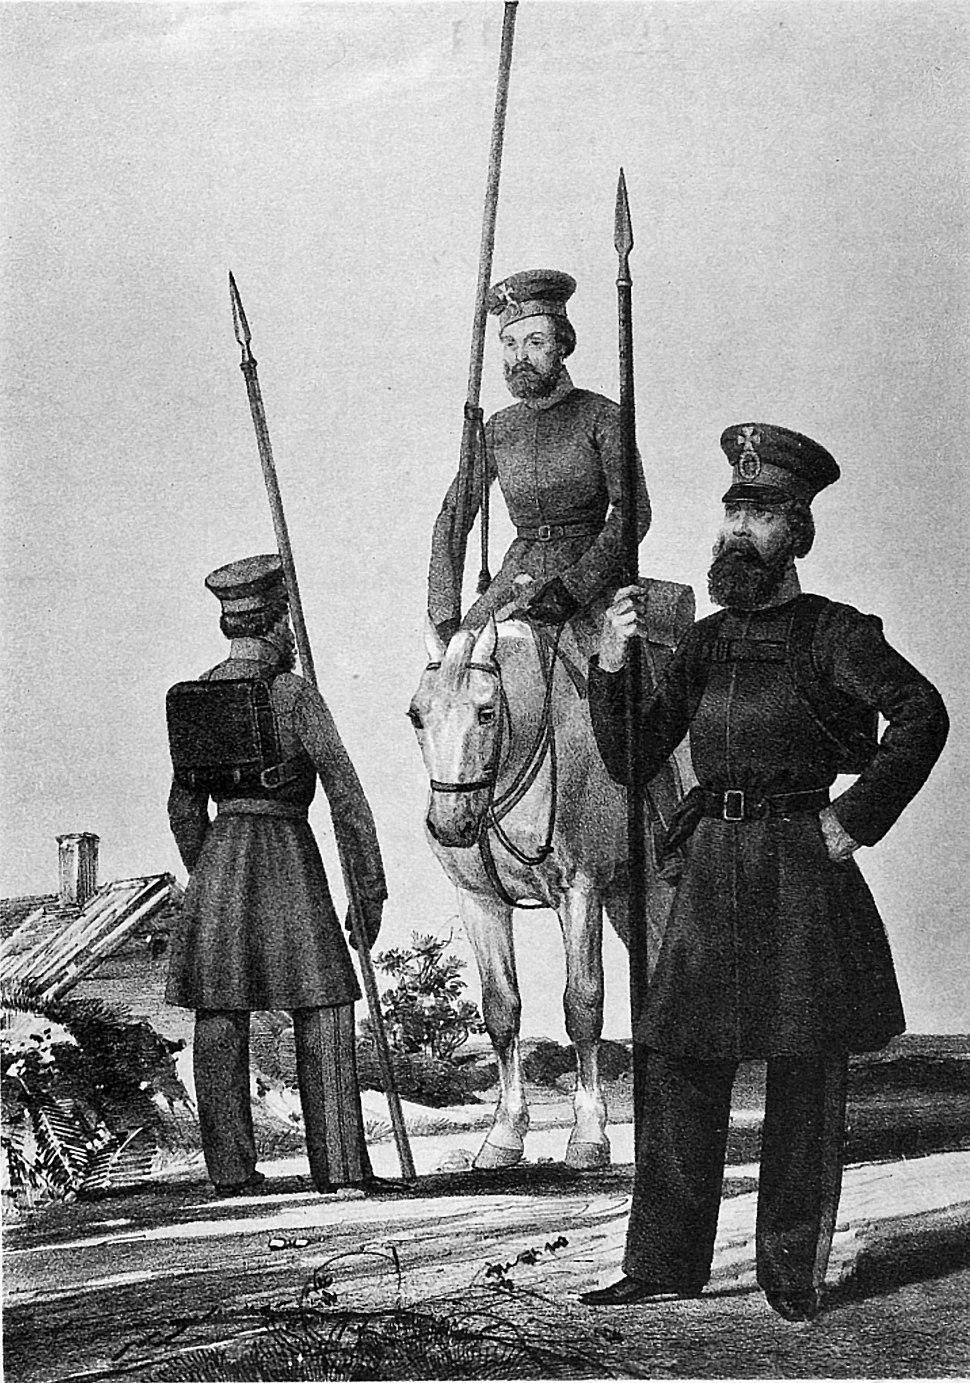 18 2533 Book illustrations of Historical description of the clothes and weapons of Russian troops